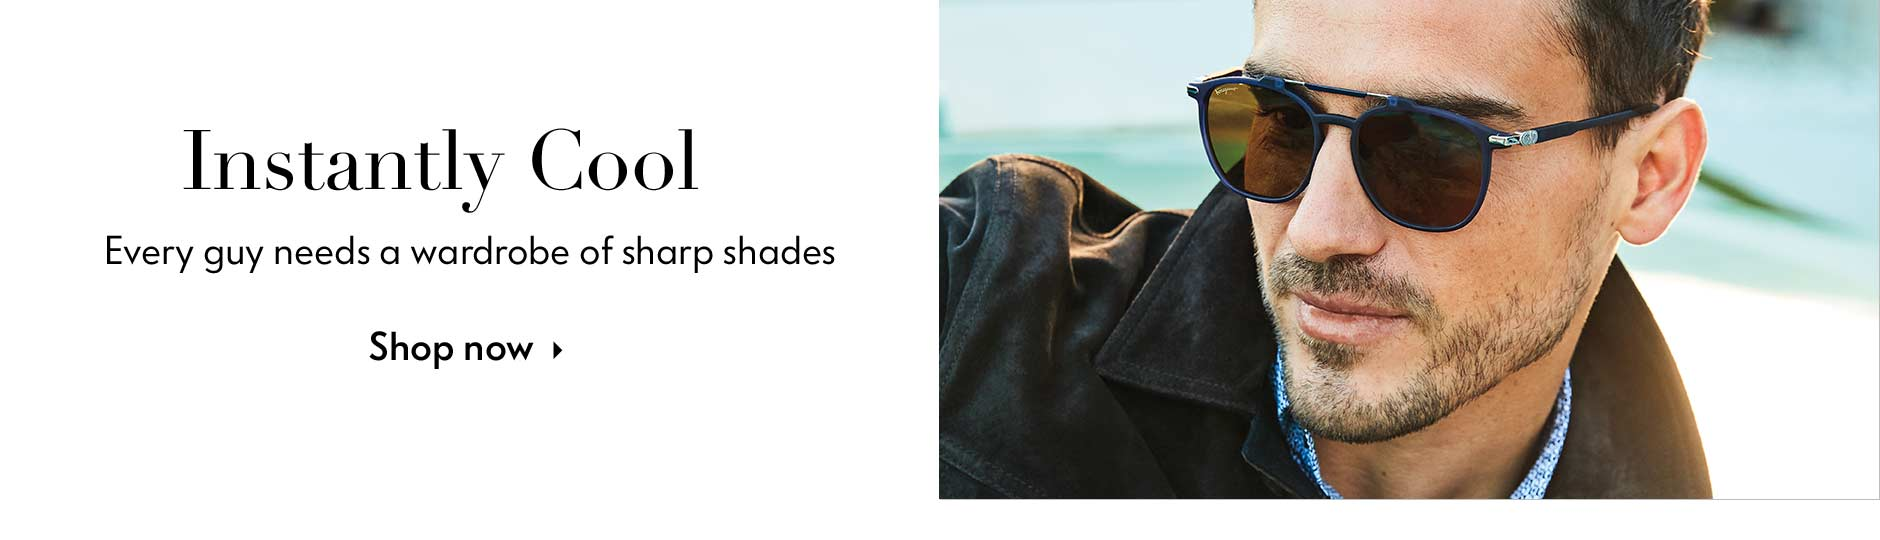 Instantly Cool - Every guy needs a wardrobe of sharp shades